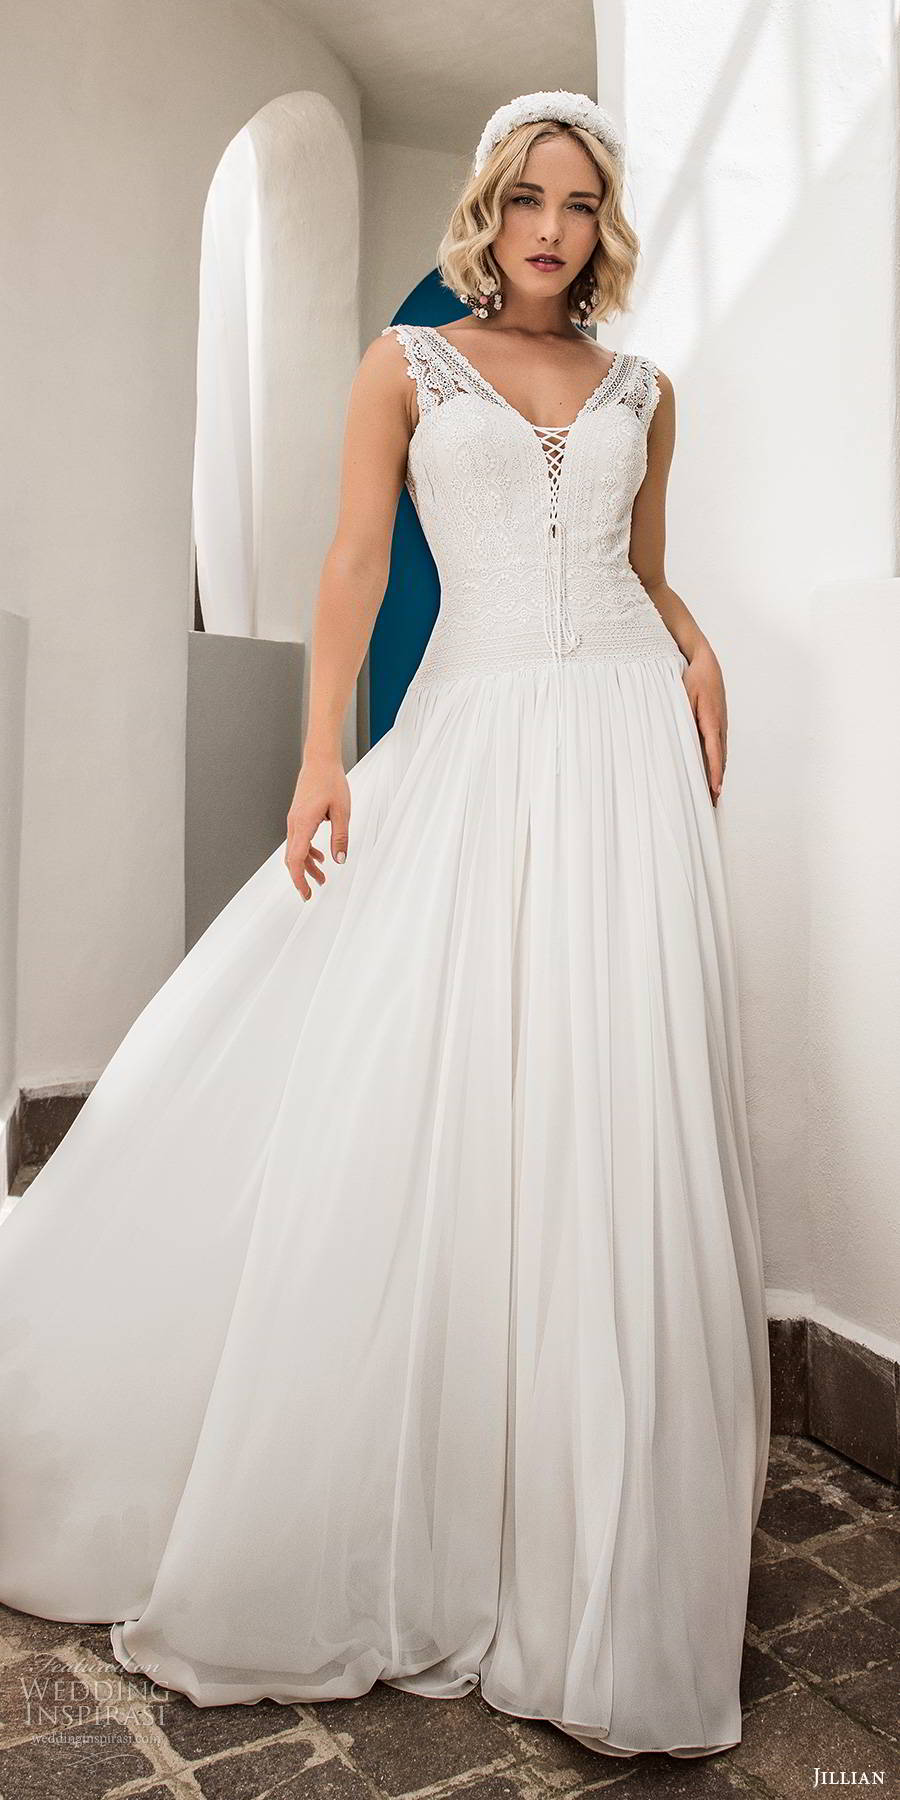 jillian sposa 2020 bridal sleeveless thick straps embellished bodice drop waist romantic boho a line ball gown wedding dress scoop back (9) mv